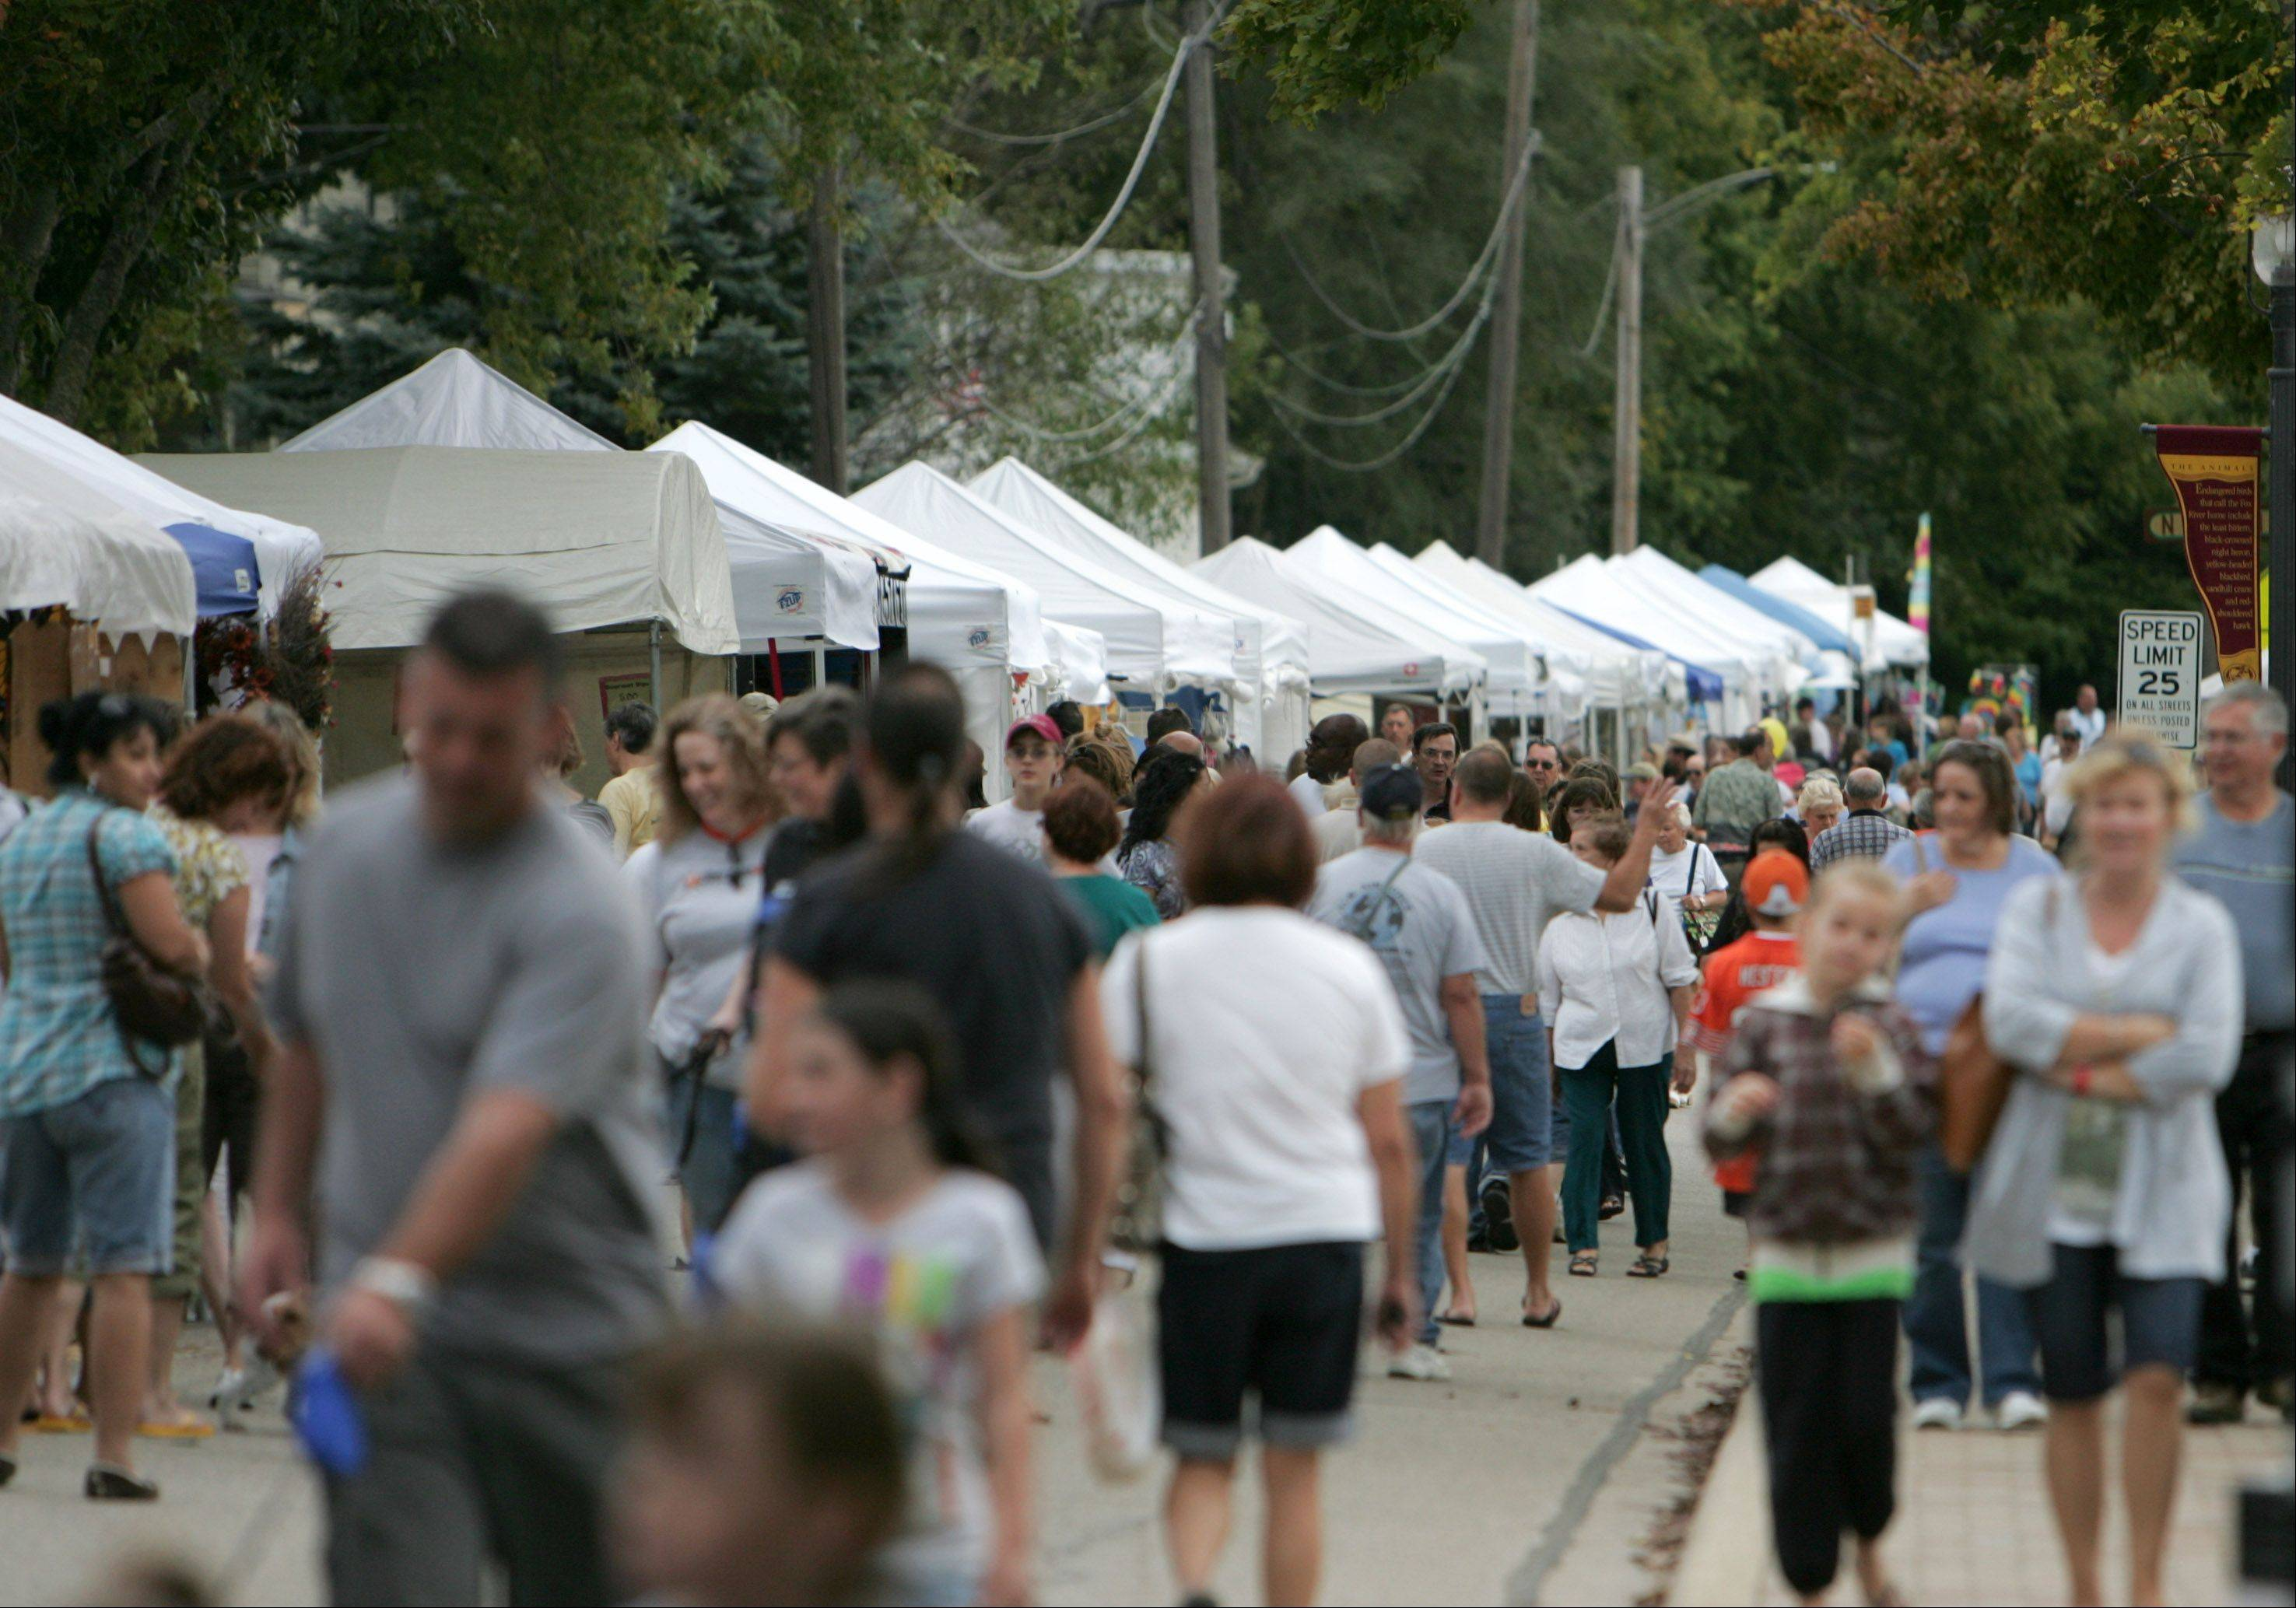 Visitors gather on the Riverwalk for an arts and crafts show during a previous West Dundee Heritage Fest. This year's festival starts today and runs through Sunday.